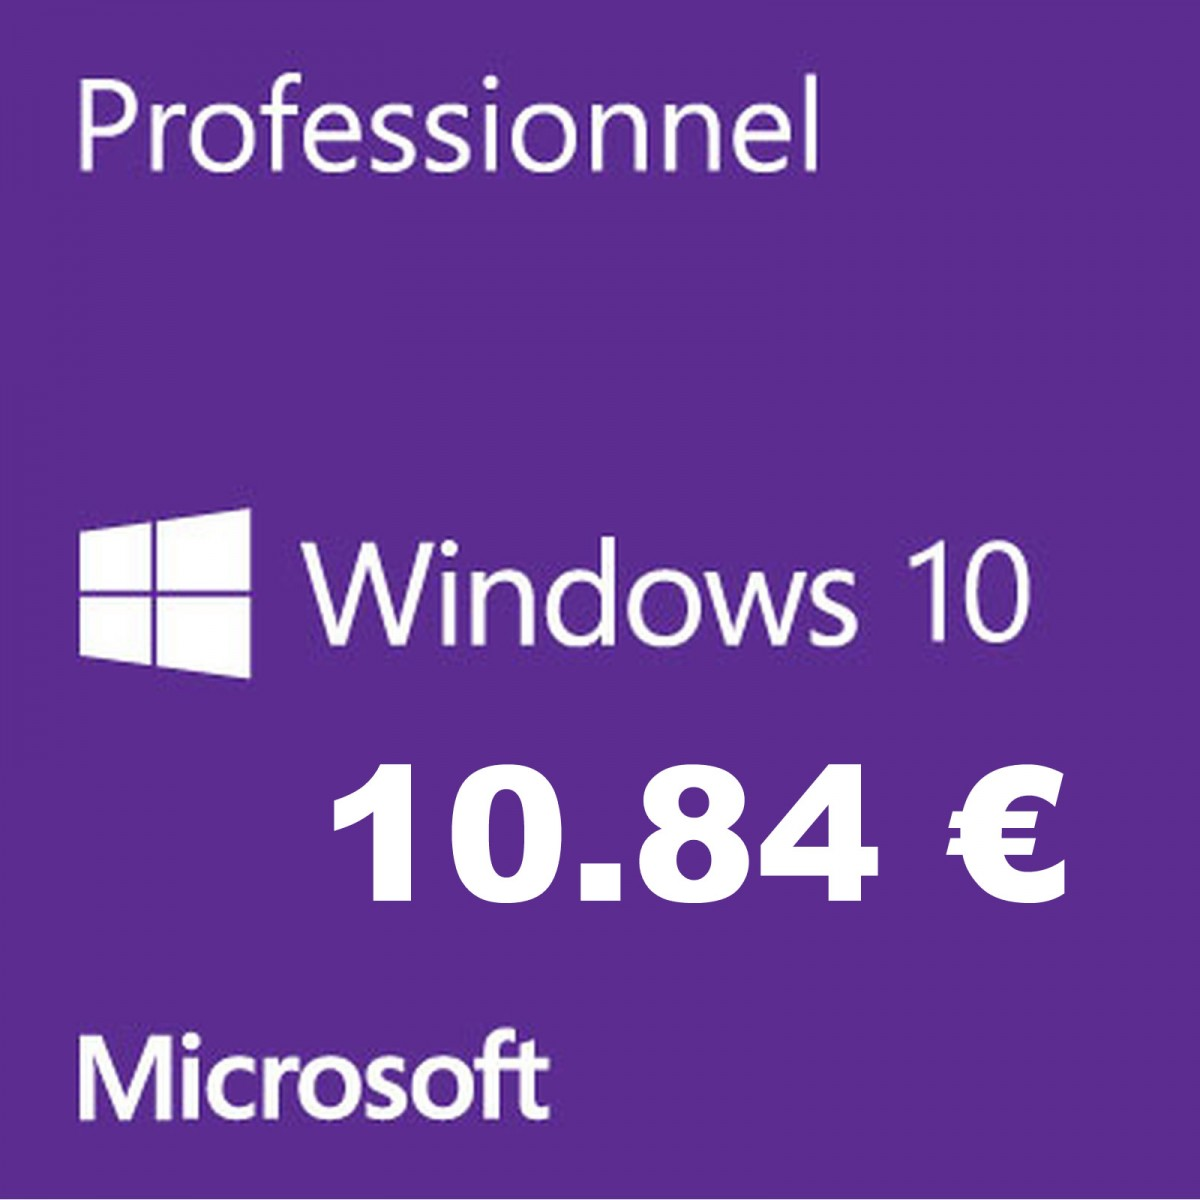 licence-windows-pas-chere cle-windows windows-10-pro